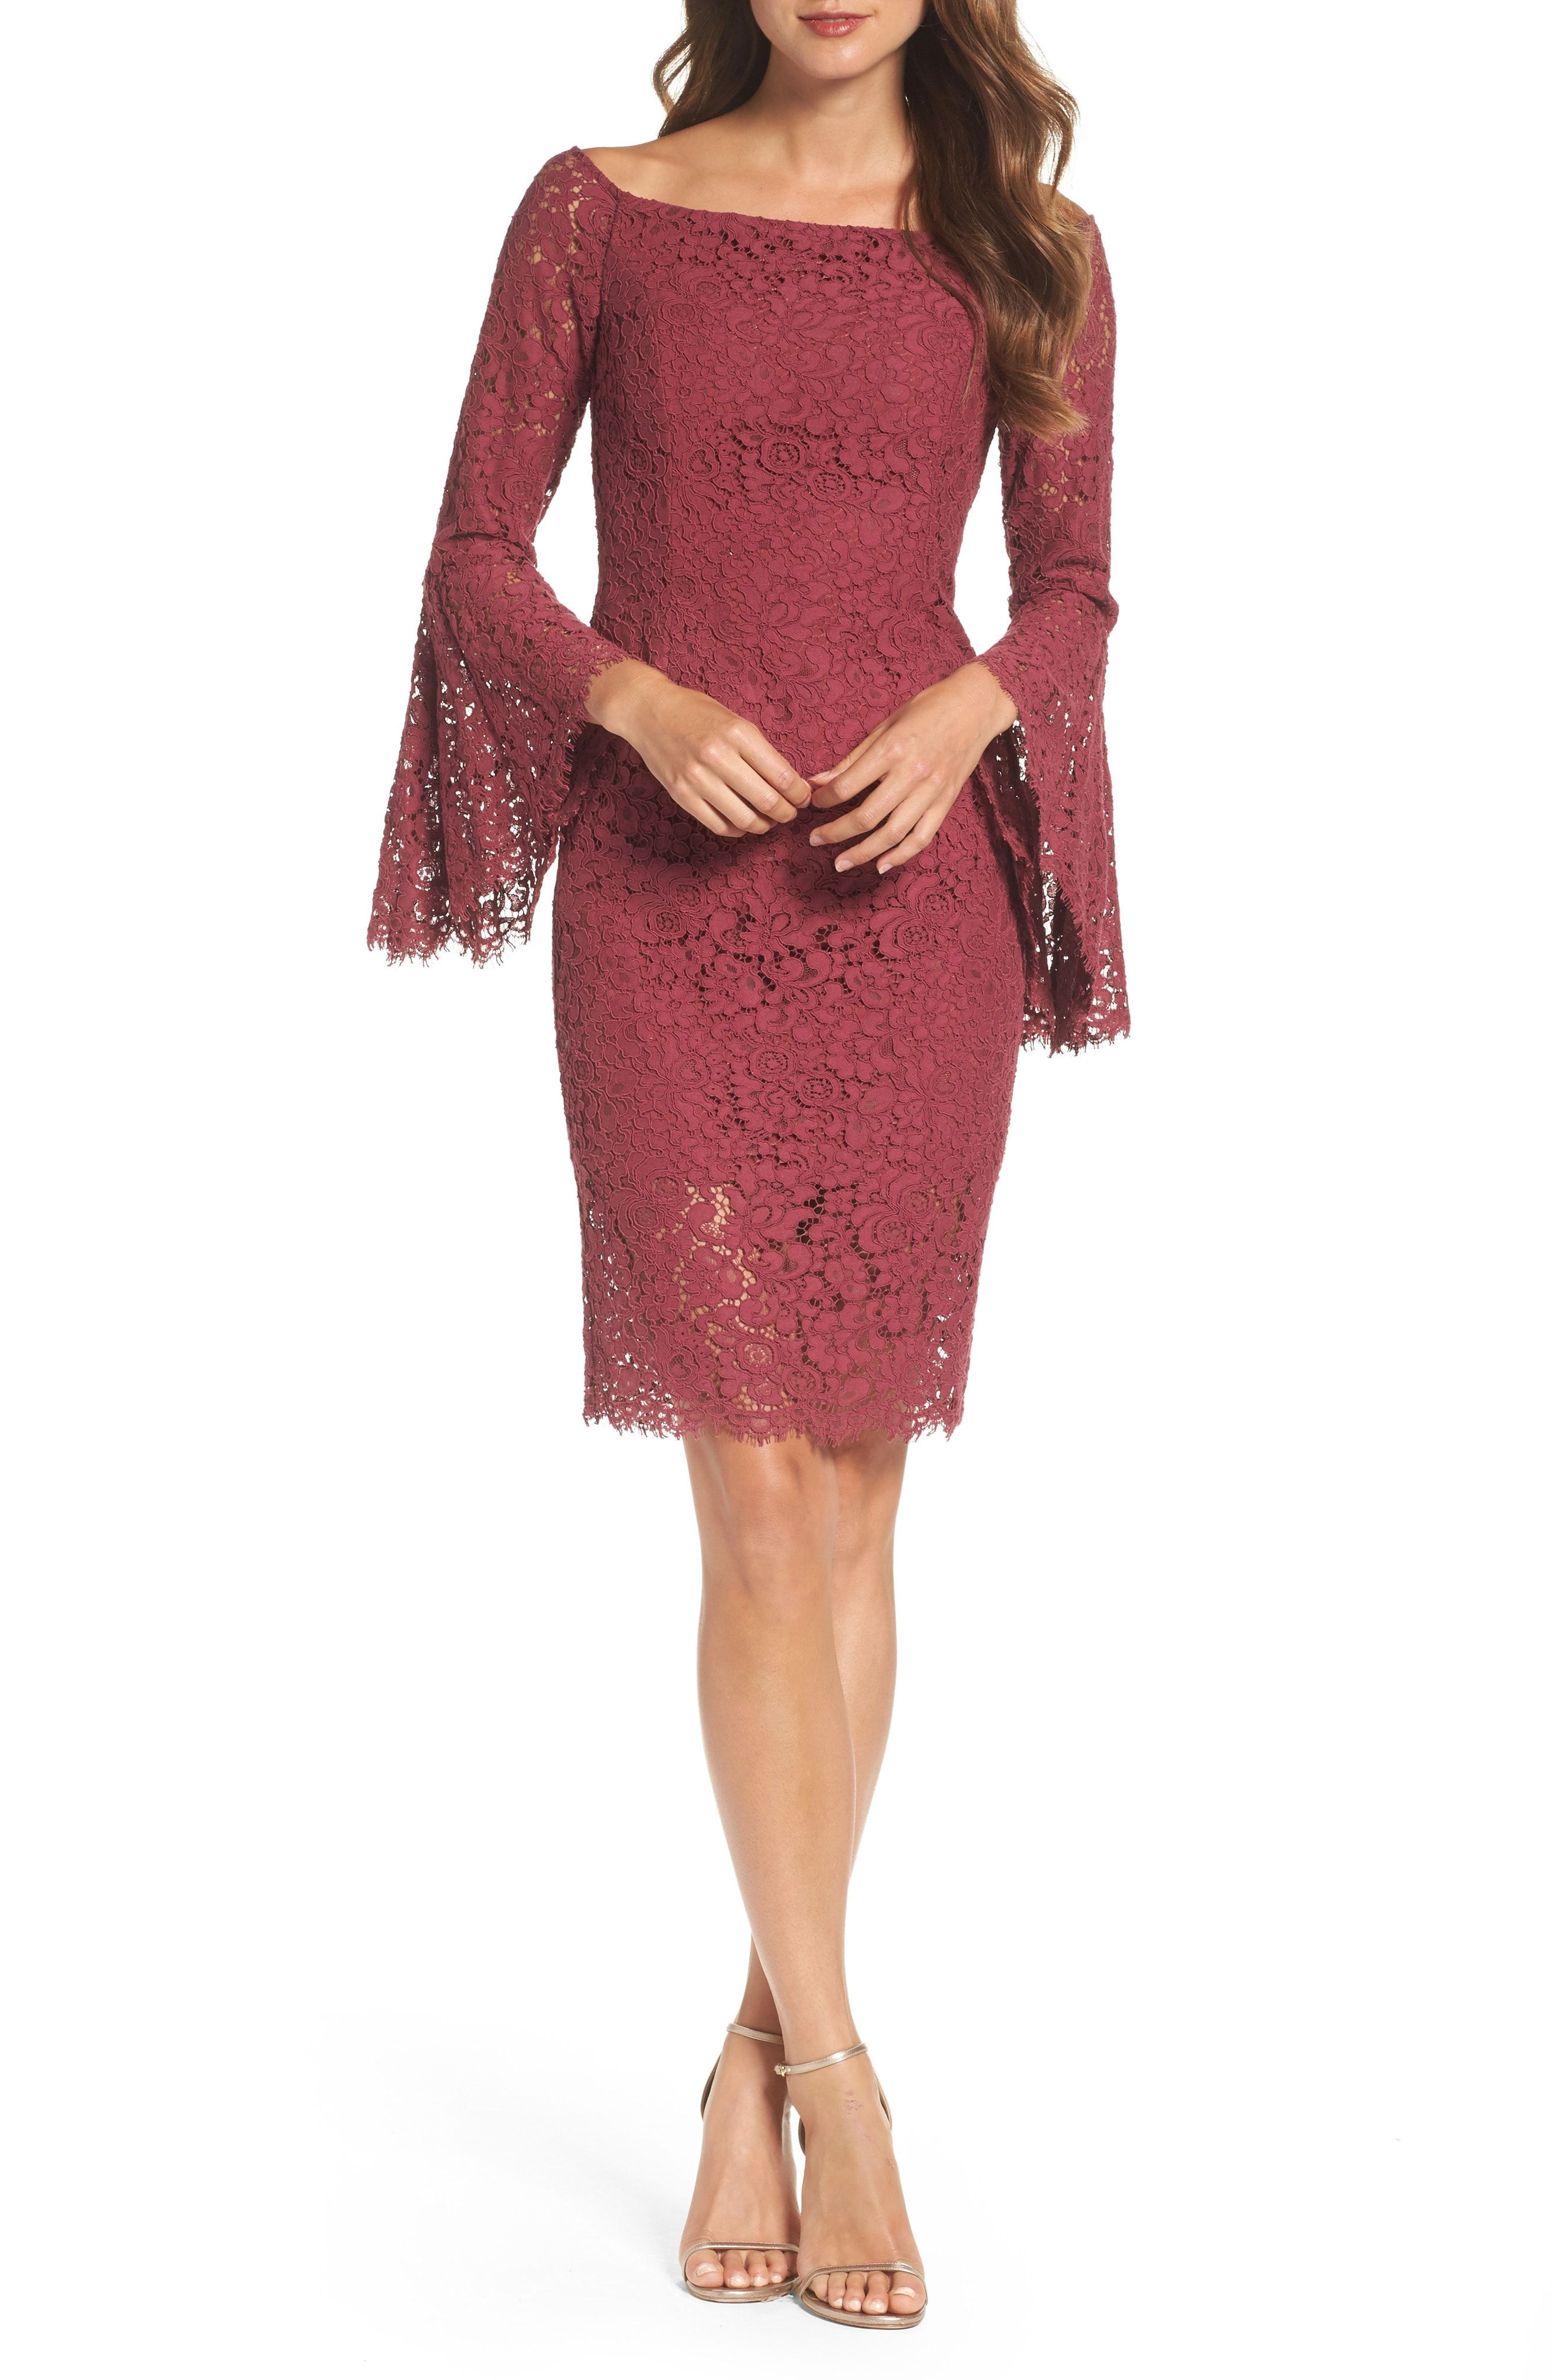 d1fde448b0b4 Dress to wear to an September or October wedding. Short lace dress with  long bell sleeves.  affiliatelink  weddingguest  fallfashion  dressesforfall